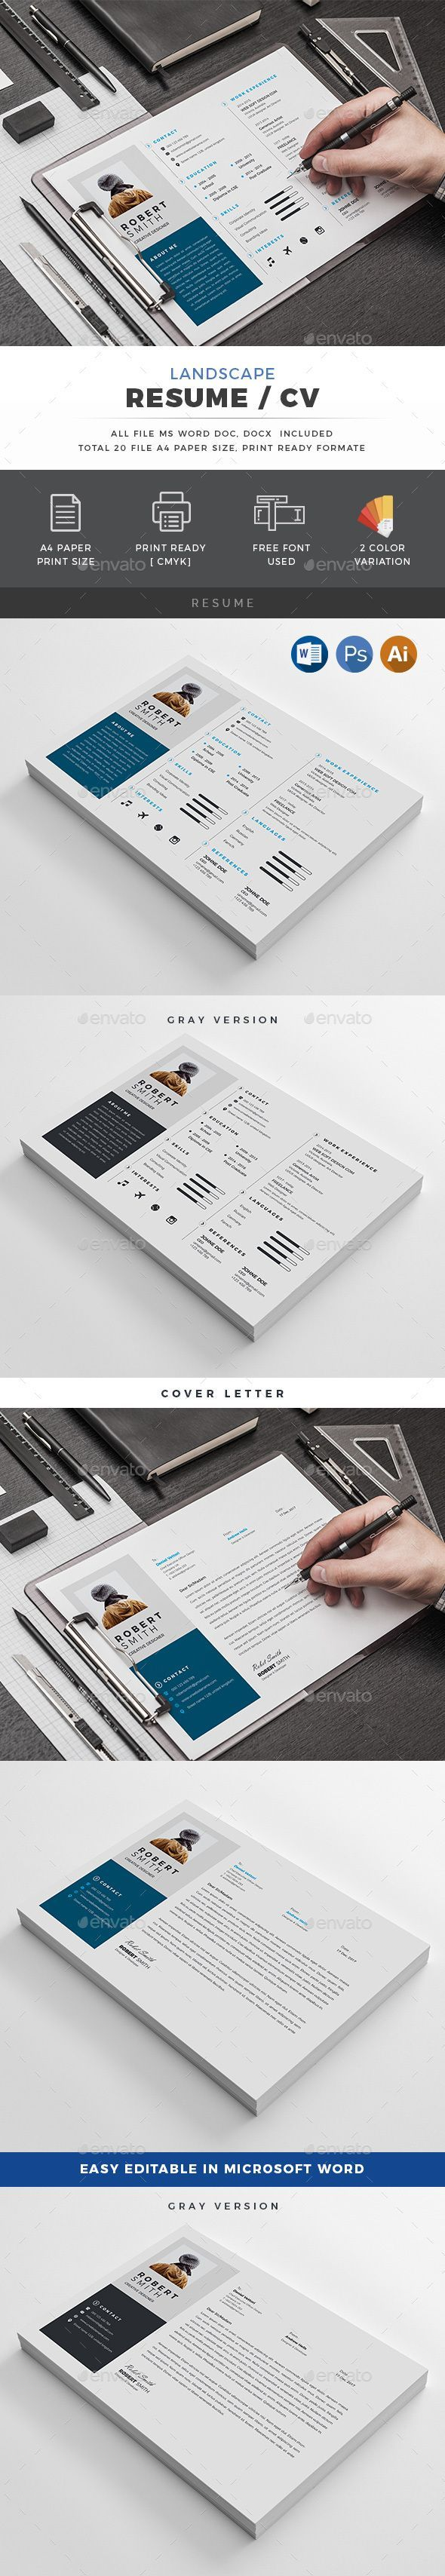 desktop support resume sample%0A Landscape Resume   Resumes Stationery Download Here   https   graphicriver net